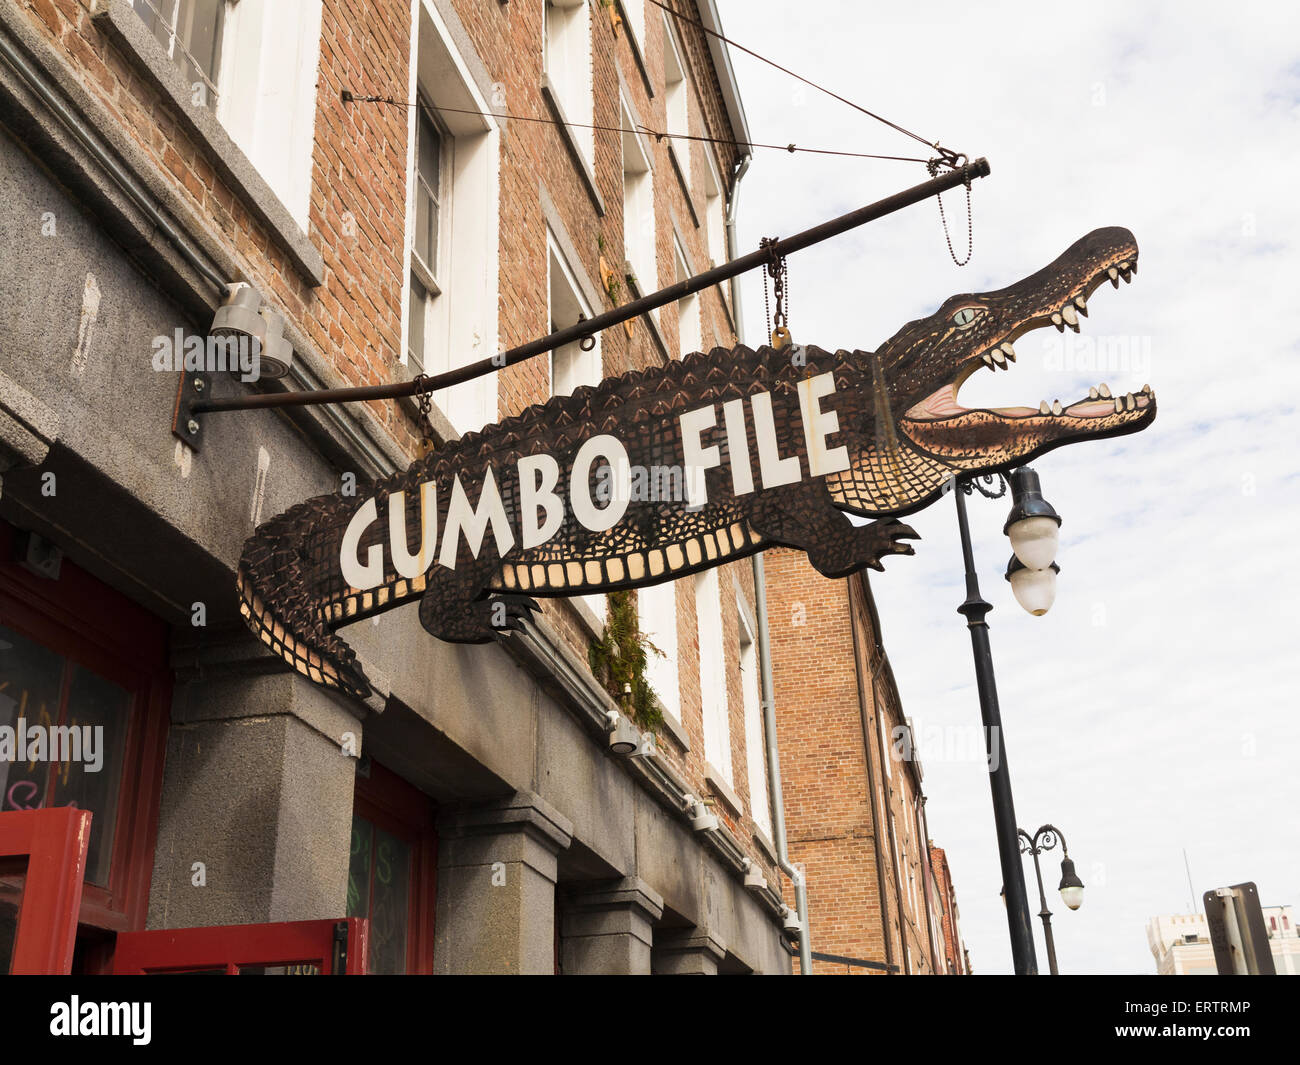 Sign for the local food or spice above a store called Gumbo File in New Orleans, Louisiana, USA - Stock Image